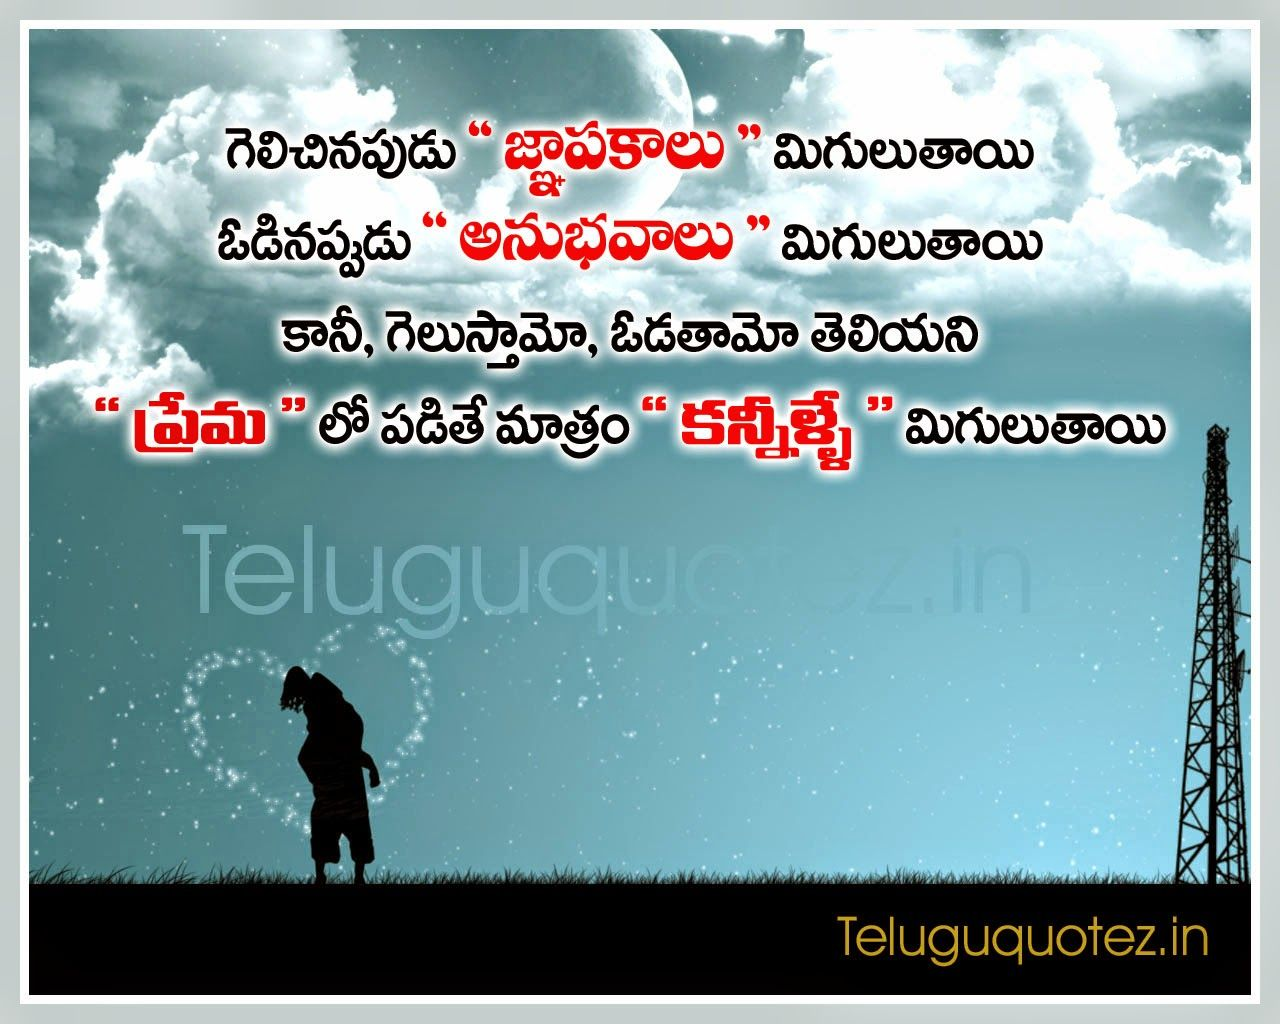 Teluguquotez.in: Best Love Telugu Quotes Saying About Life